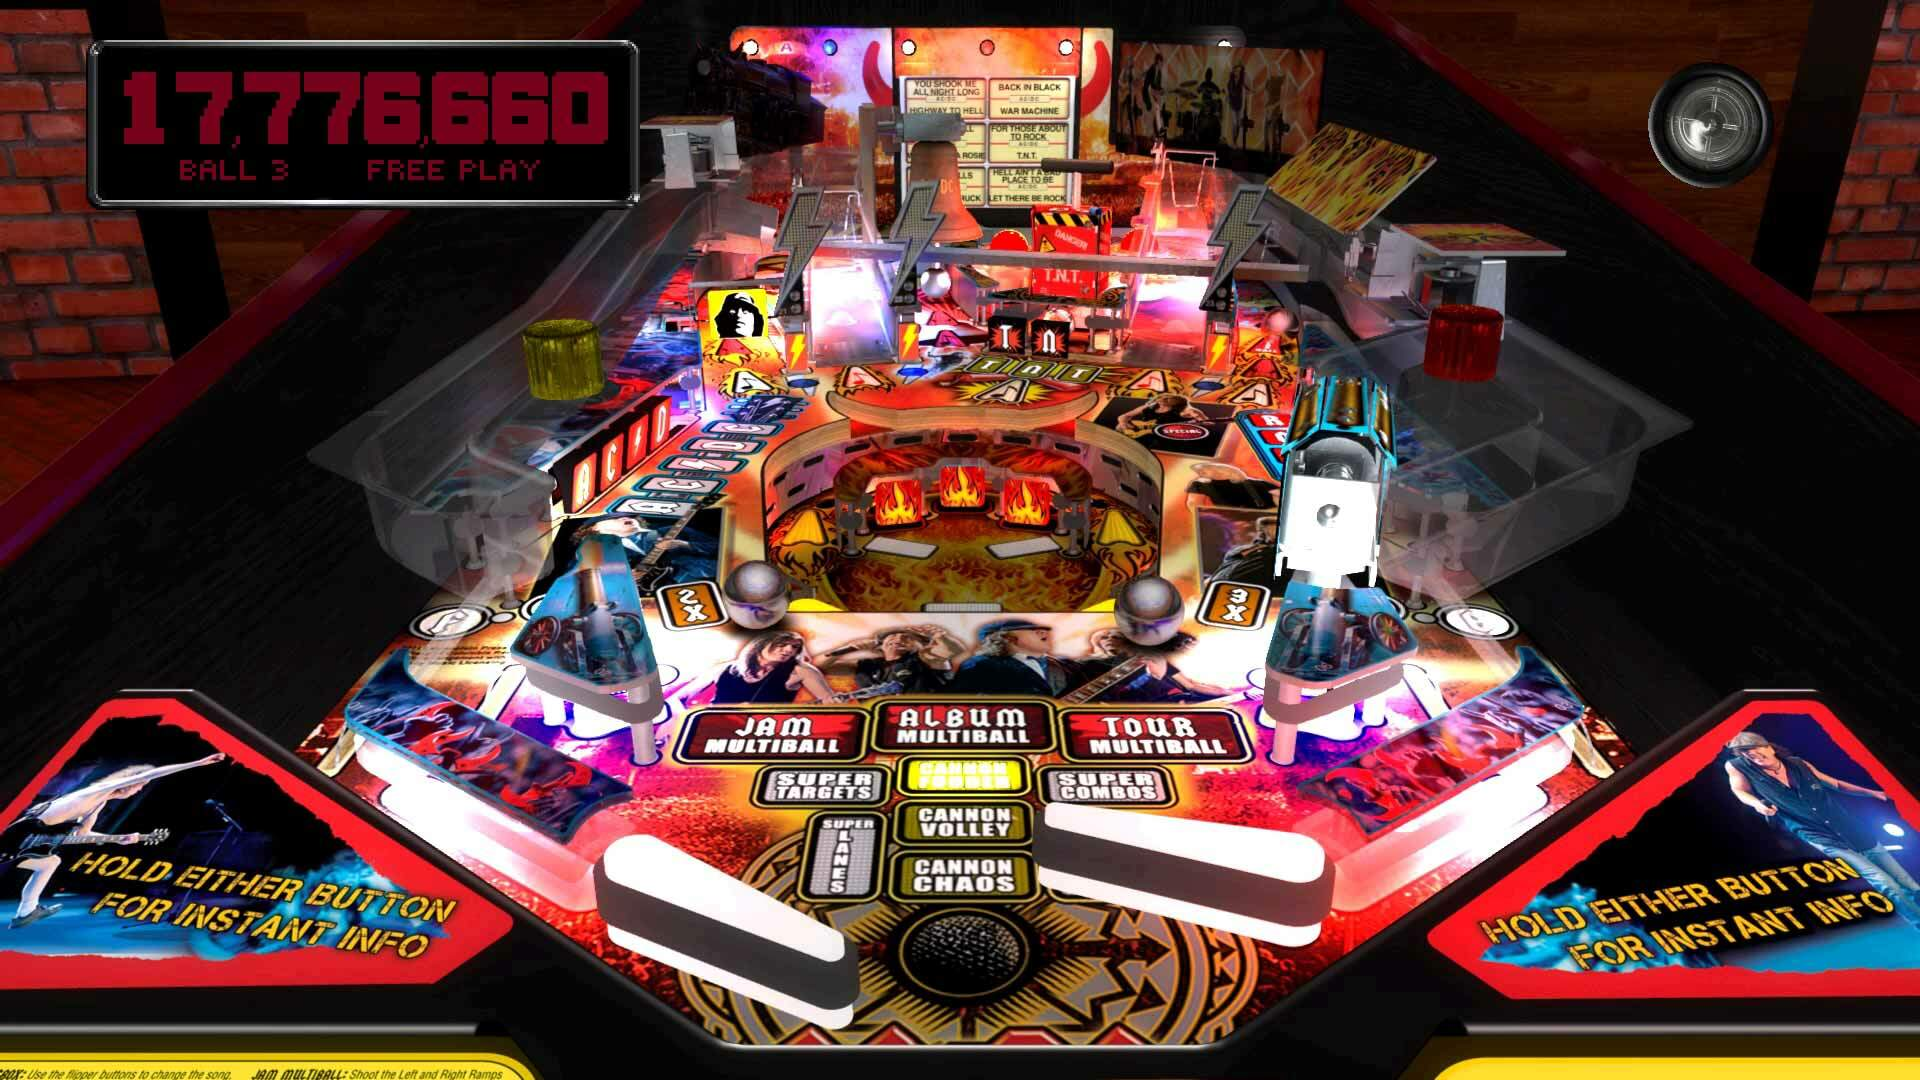 Stern Pinball Arcade PS4 Review: Superb Silverball Simulation